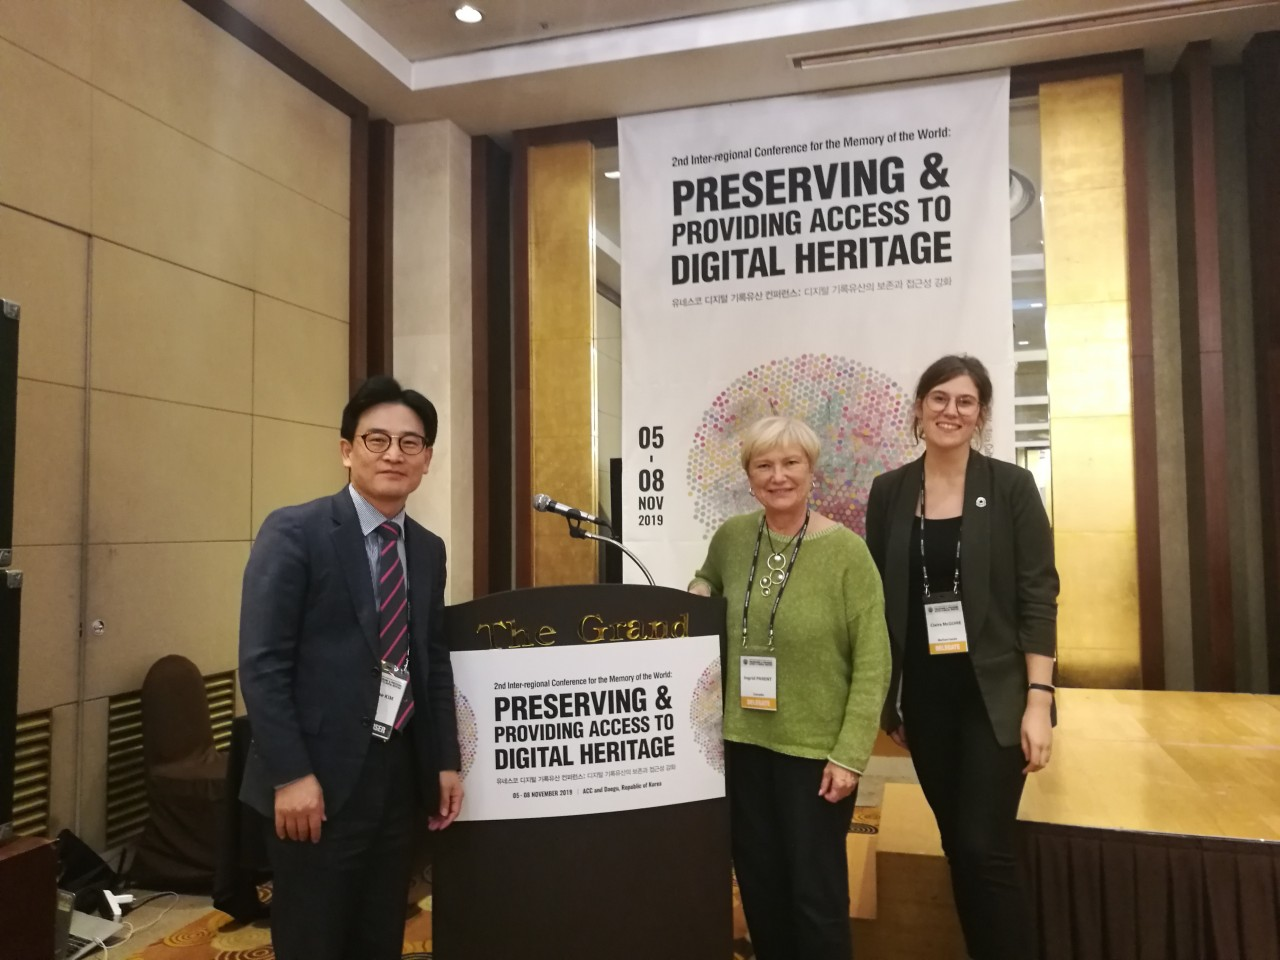 (L to R) Kwibae Kim, chair of Memory of the World Committee for the Asia-Pacific, Ingrid Parent, past IFLA president and UNESCO-PERSIST chair with a Policy and Advocacy team member and conference organiser